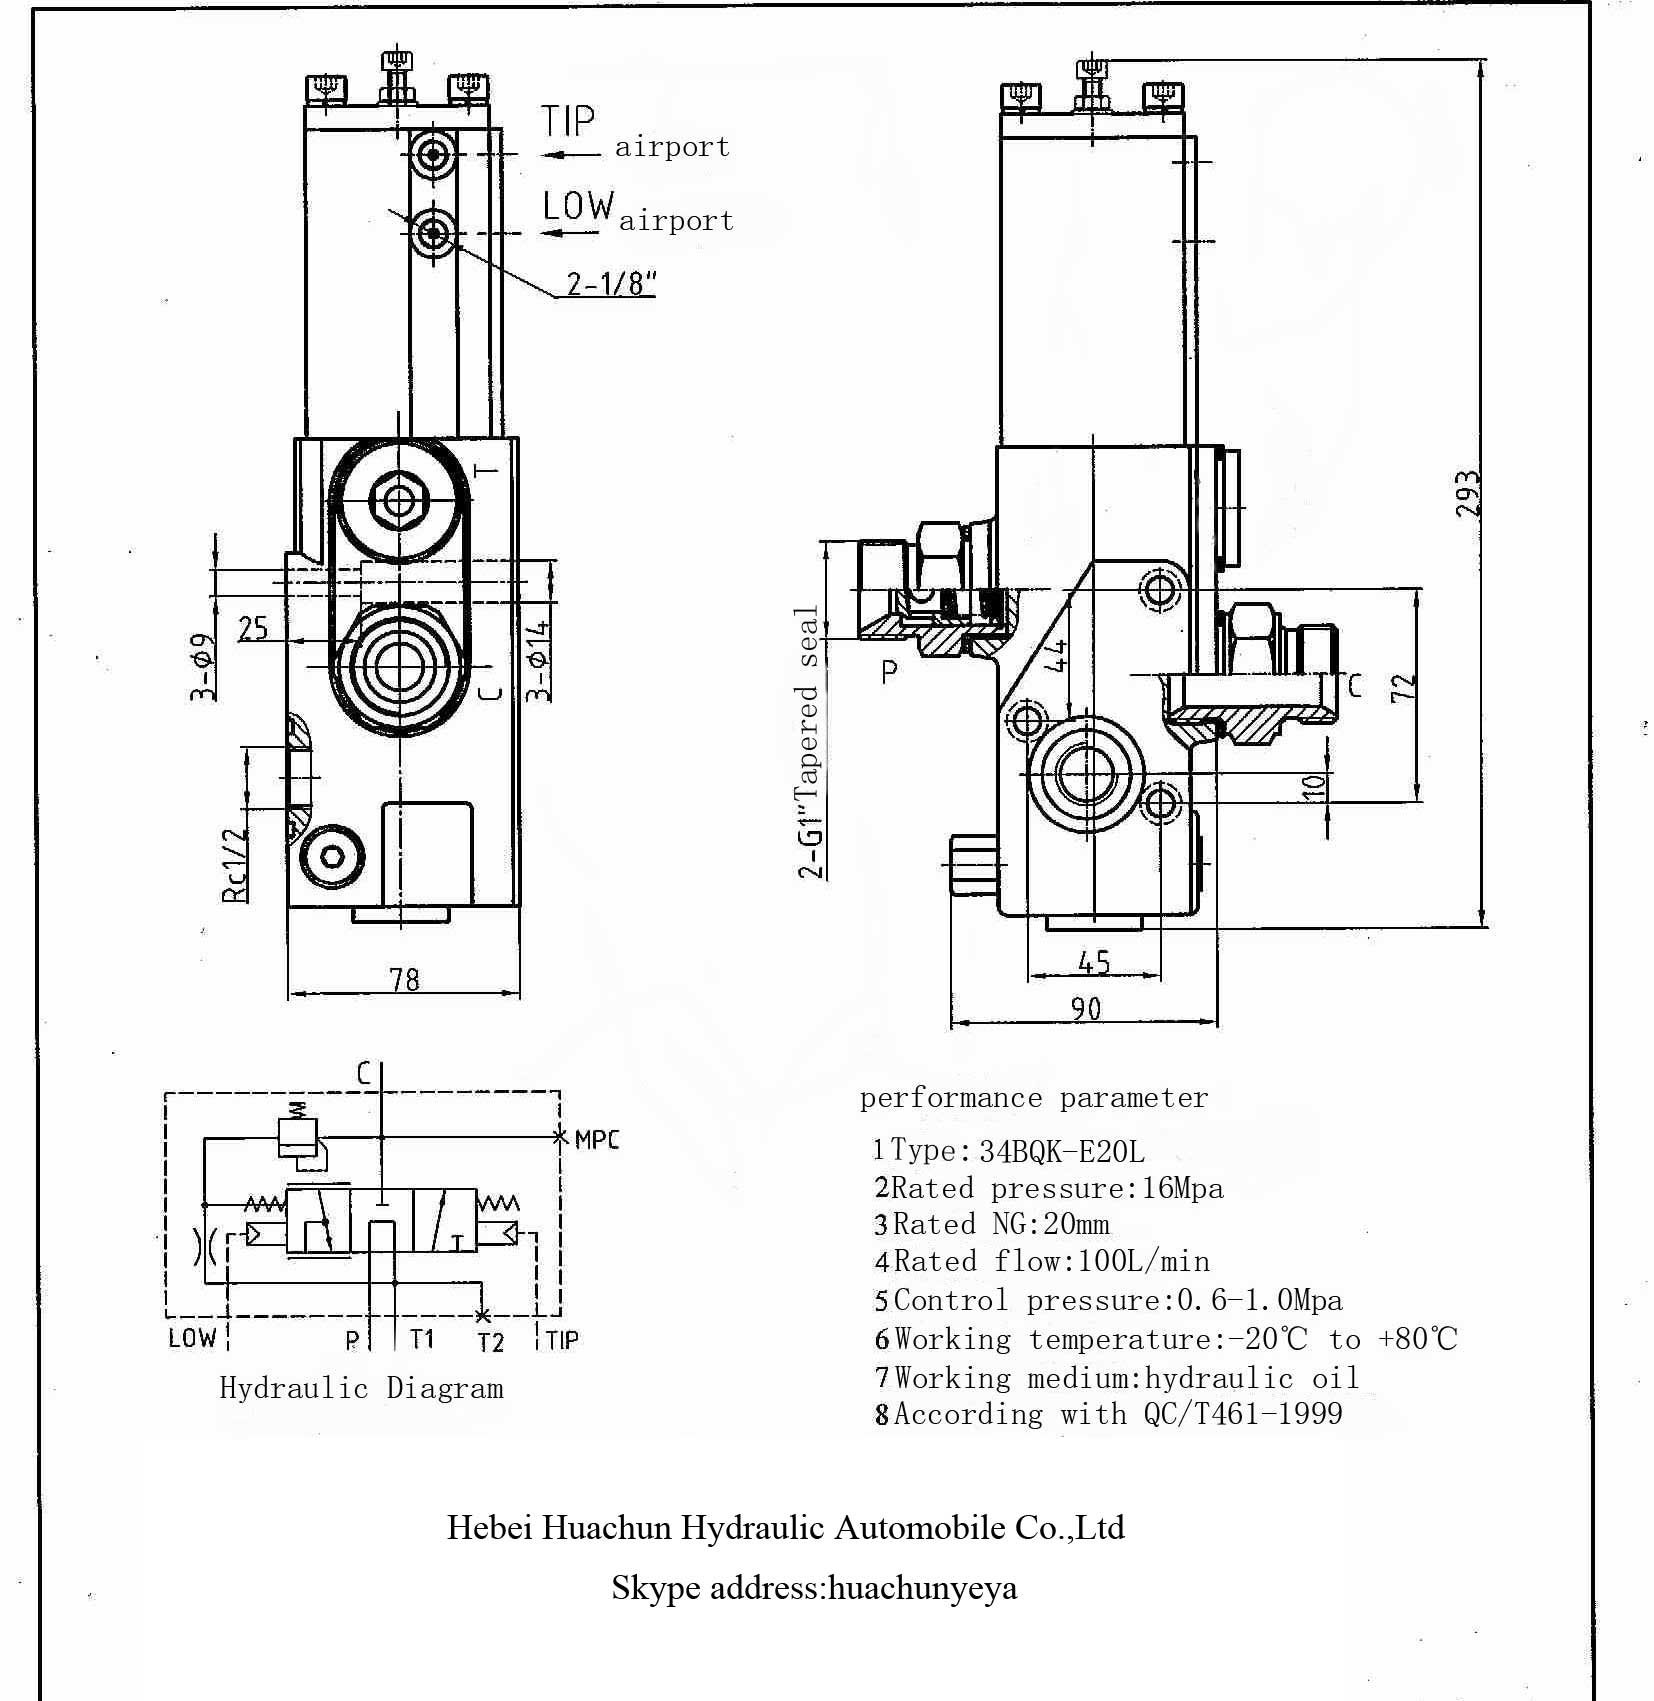 diagram also 2011 ford f550 fuse box diagram as well as 2004 ford